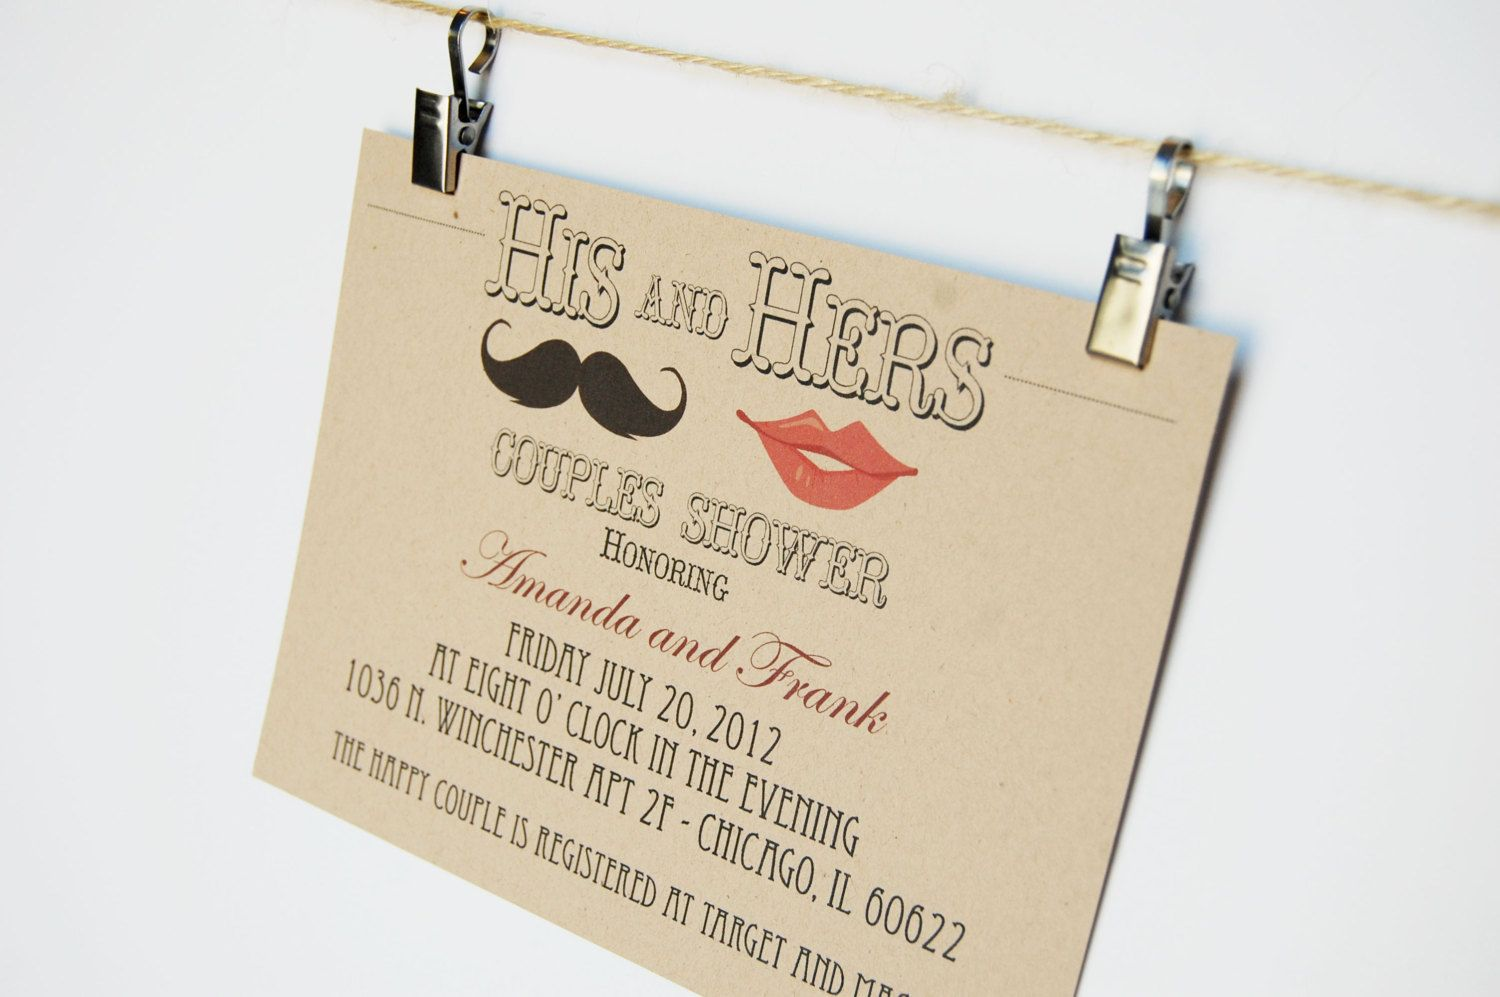 Hipster wedding invitations his and hers couples shower ...